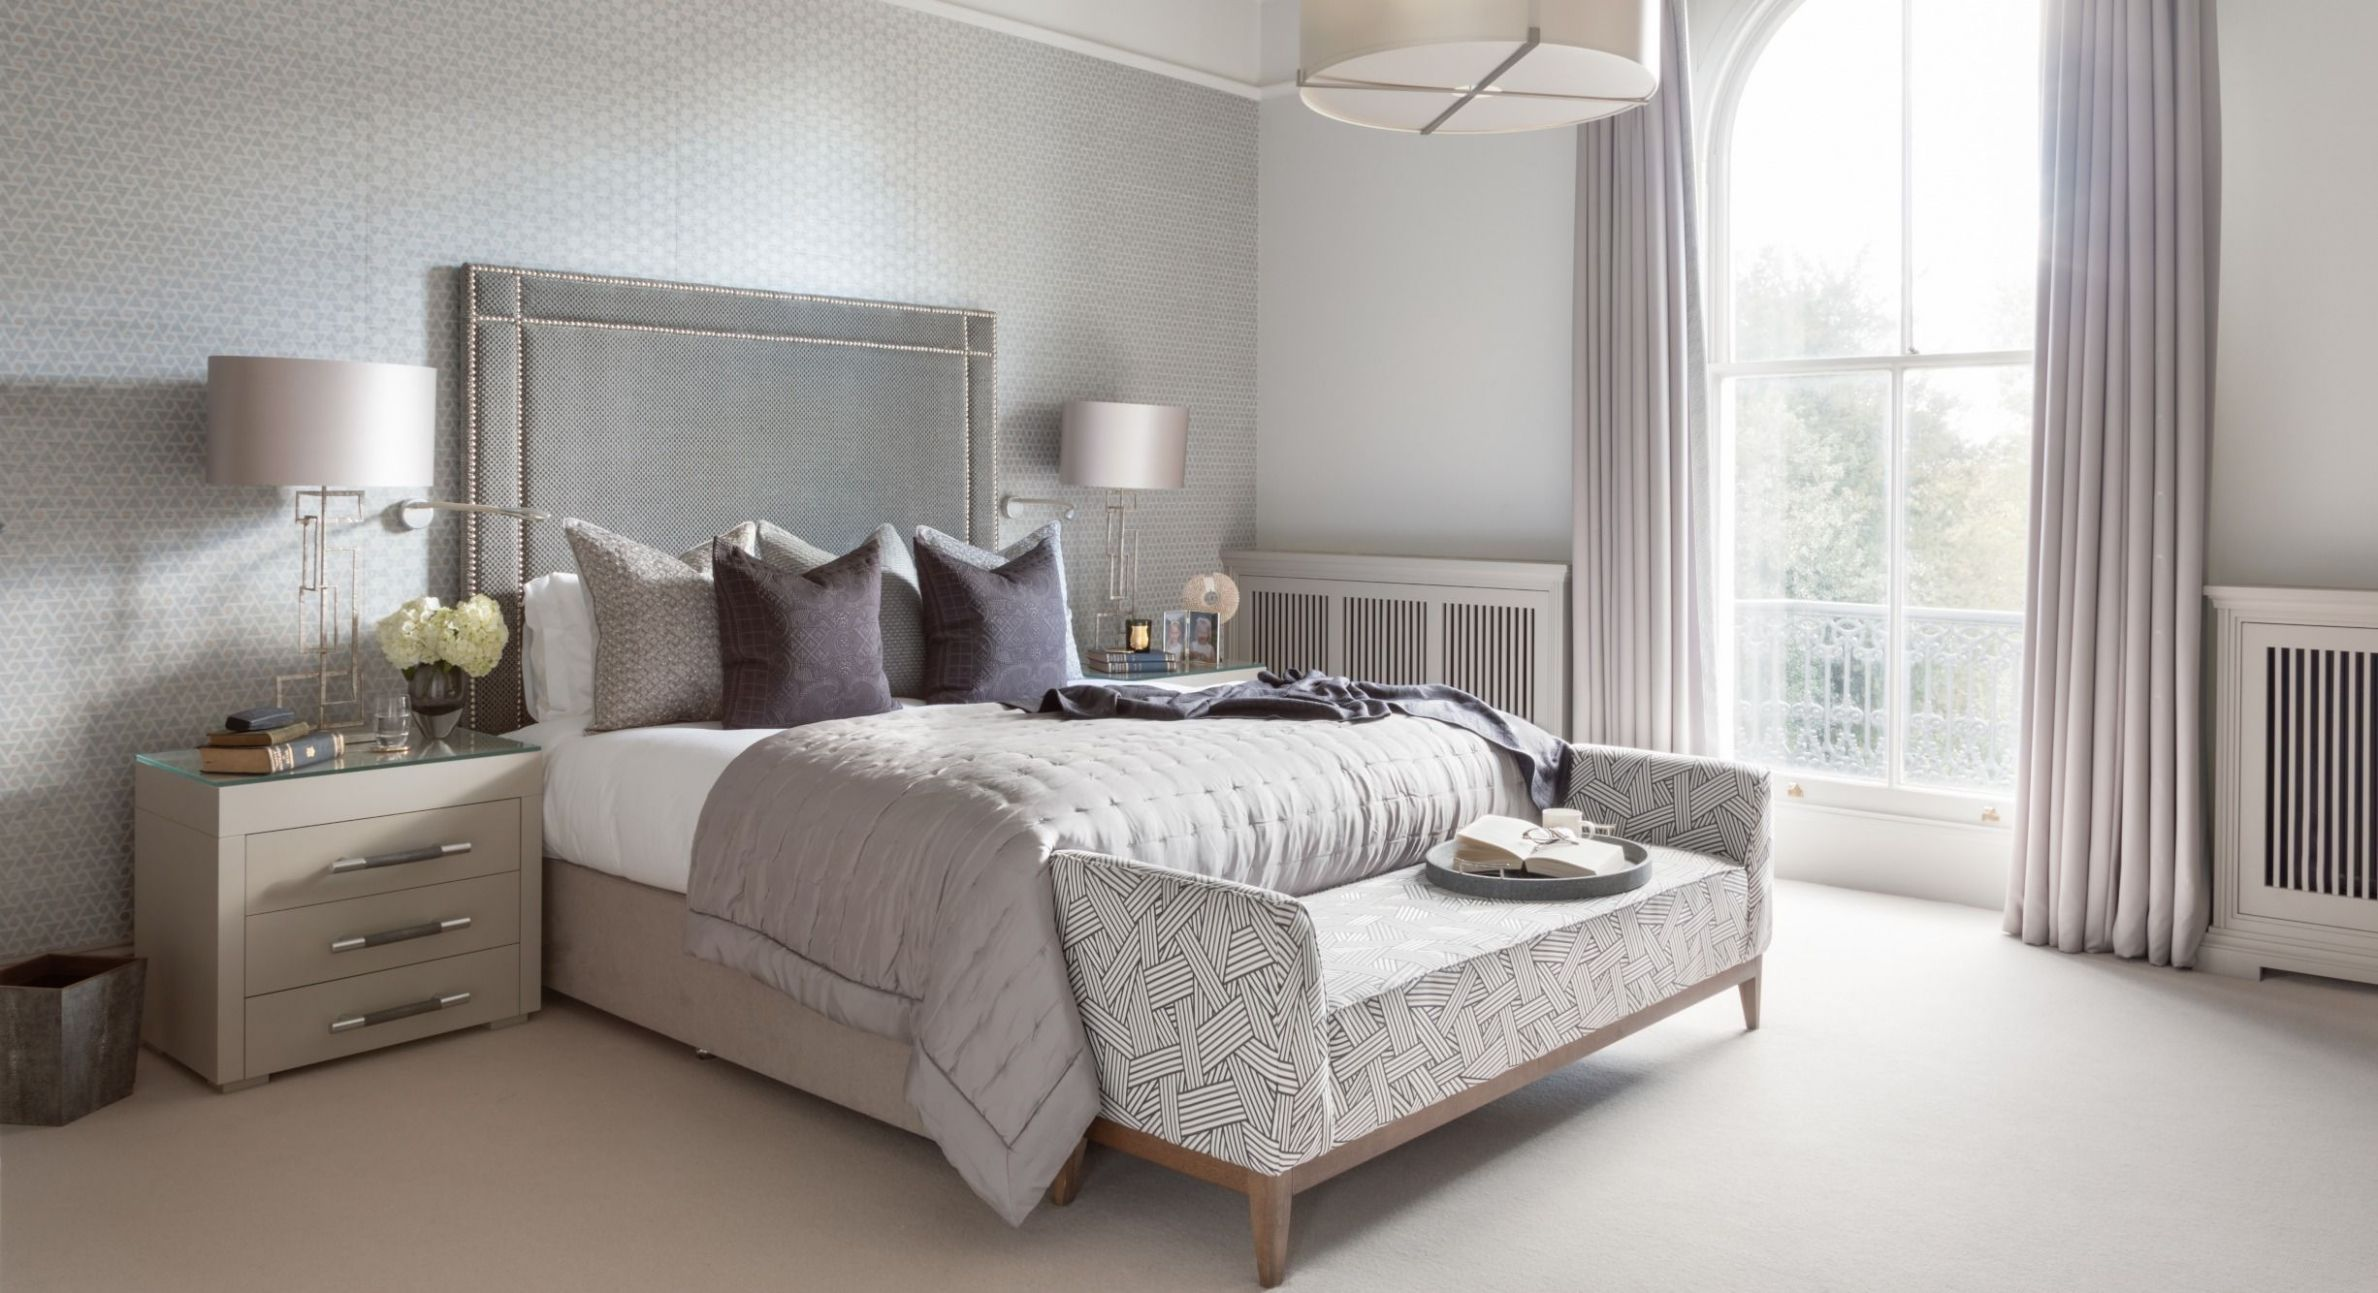 Neutral Bedroom Colour Ideas in 12 | Neutral bedrooms, Gender ...